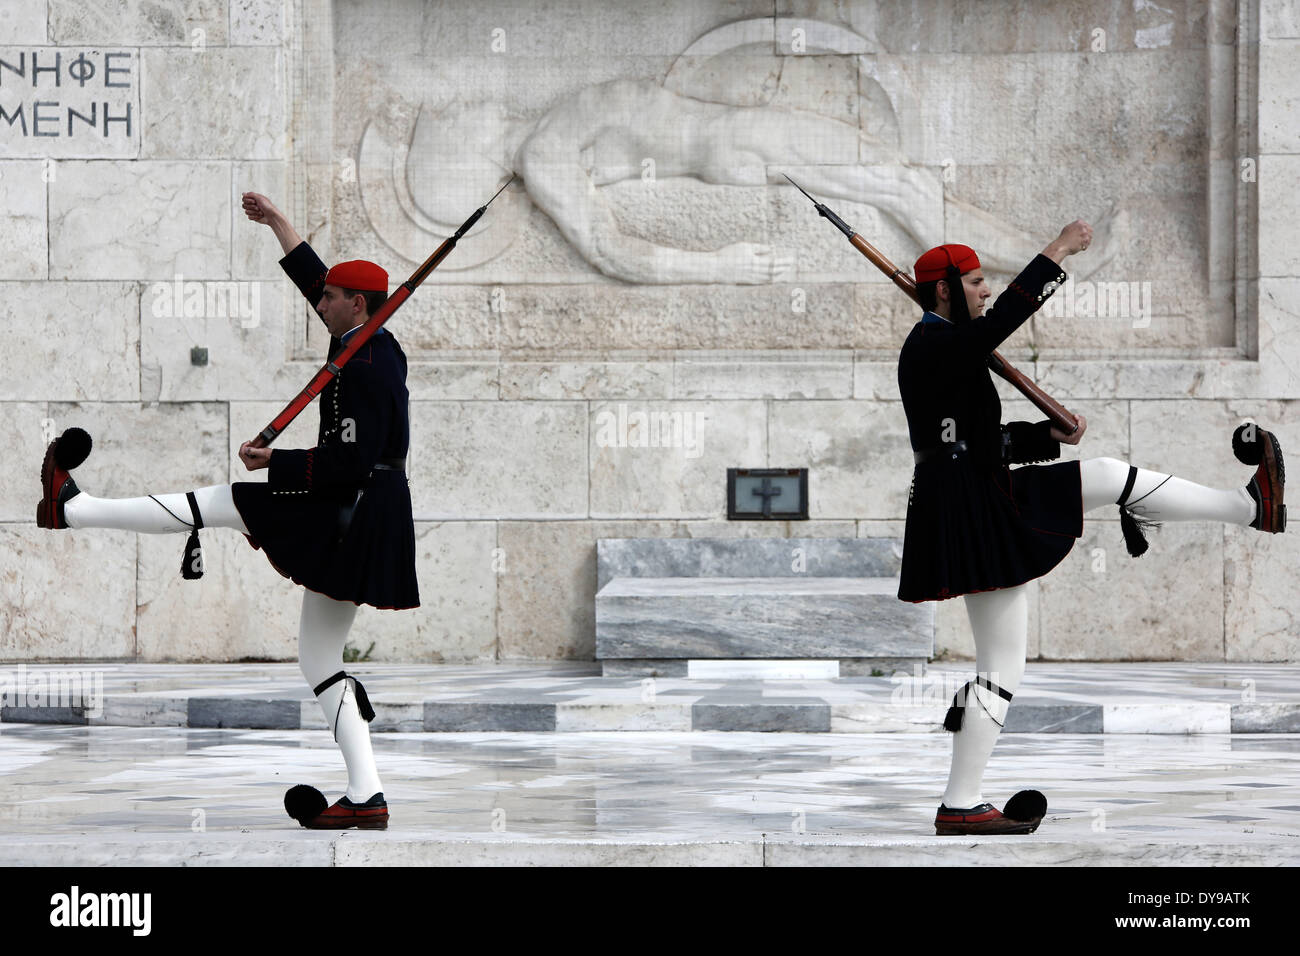 Athens, Greece. 10th Apr, 2014. Evzones perform the Changing of the Guard Ceremony at the Tomb of the Unknown Soldier in Syntagma Square in Athens, Greece on April 10, 2014. Credit:  Konstantinos Tsakalidis/Alamy Live News - Stock Image